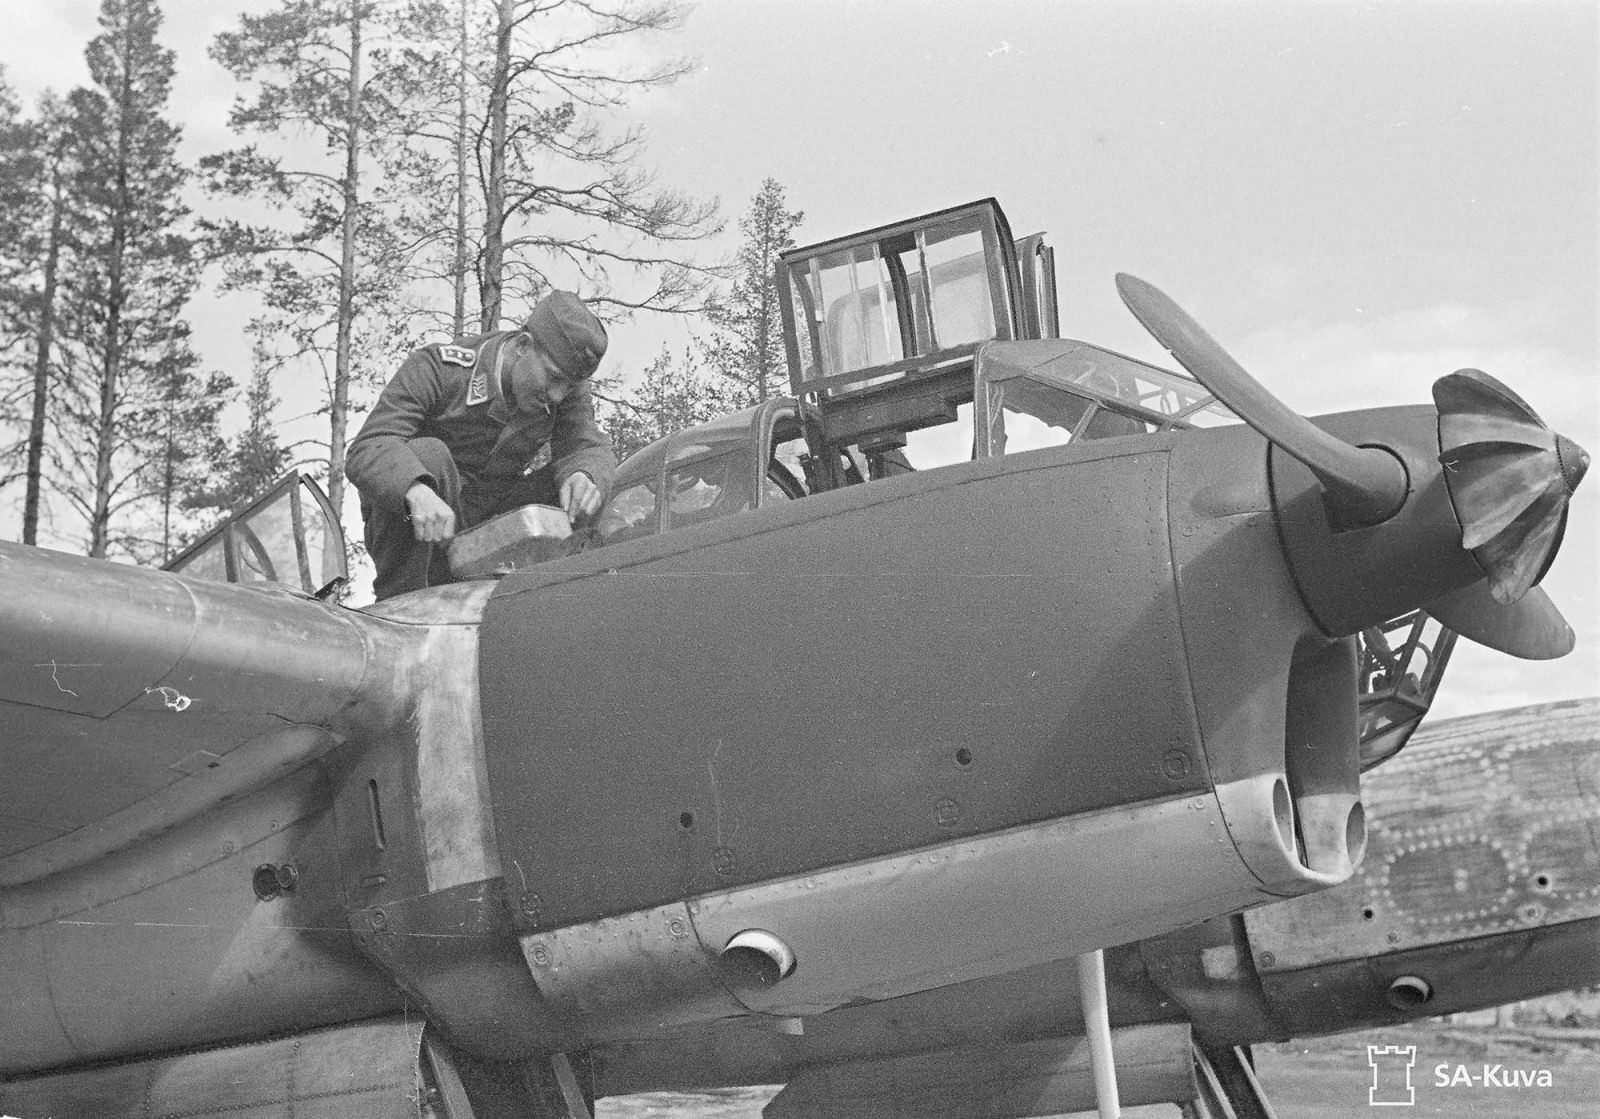 Fw 189 A-3 Uhu of the 1.(H)/32 V7+1J June 1943 6